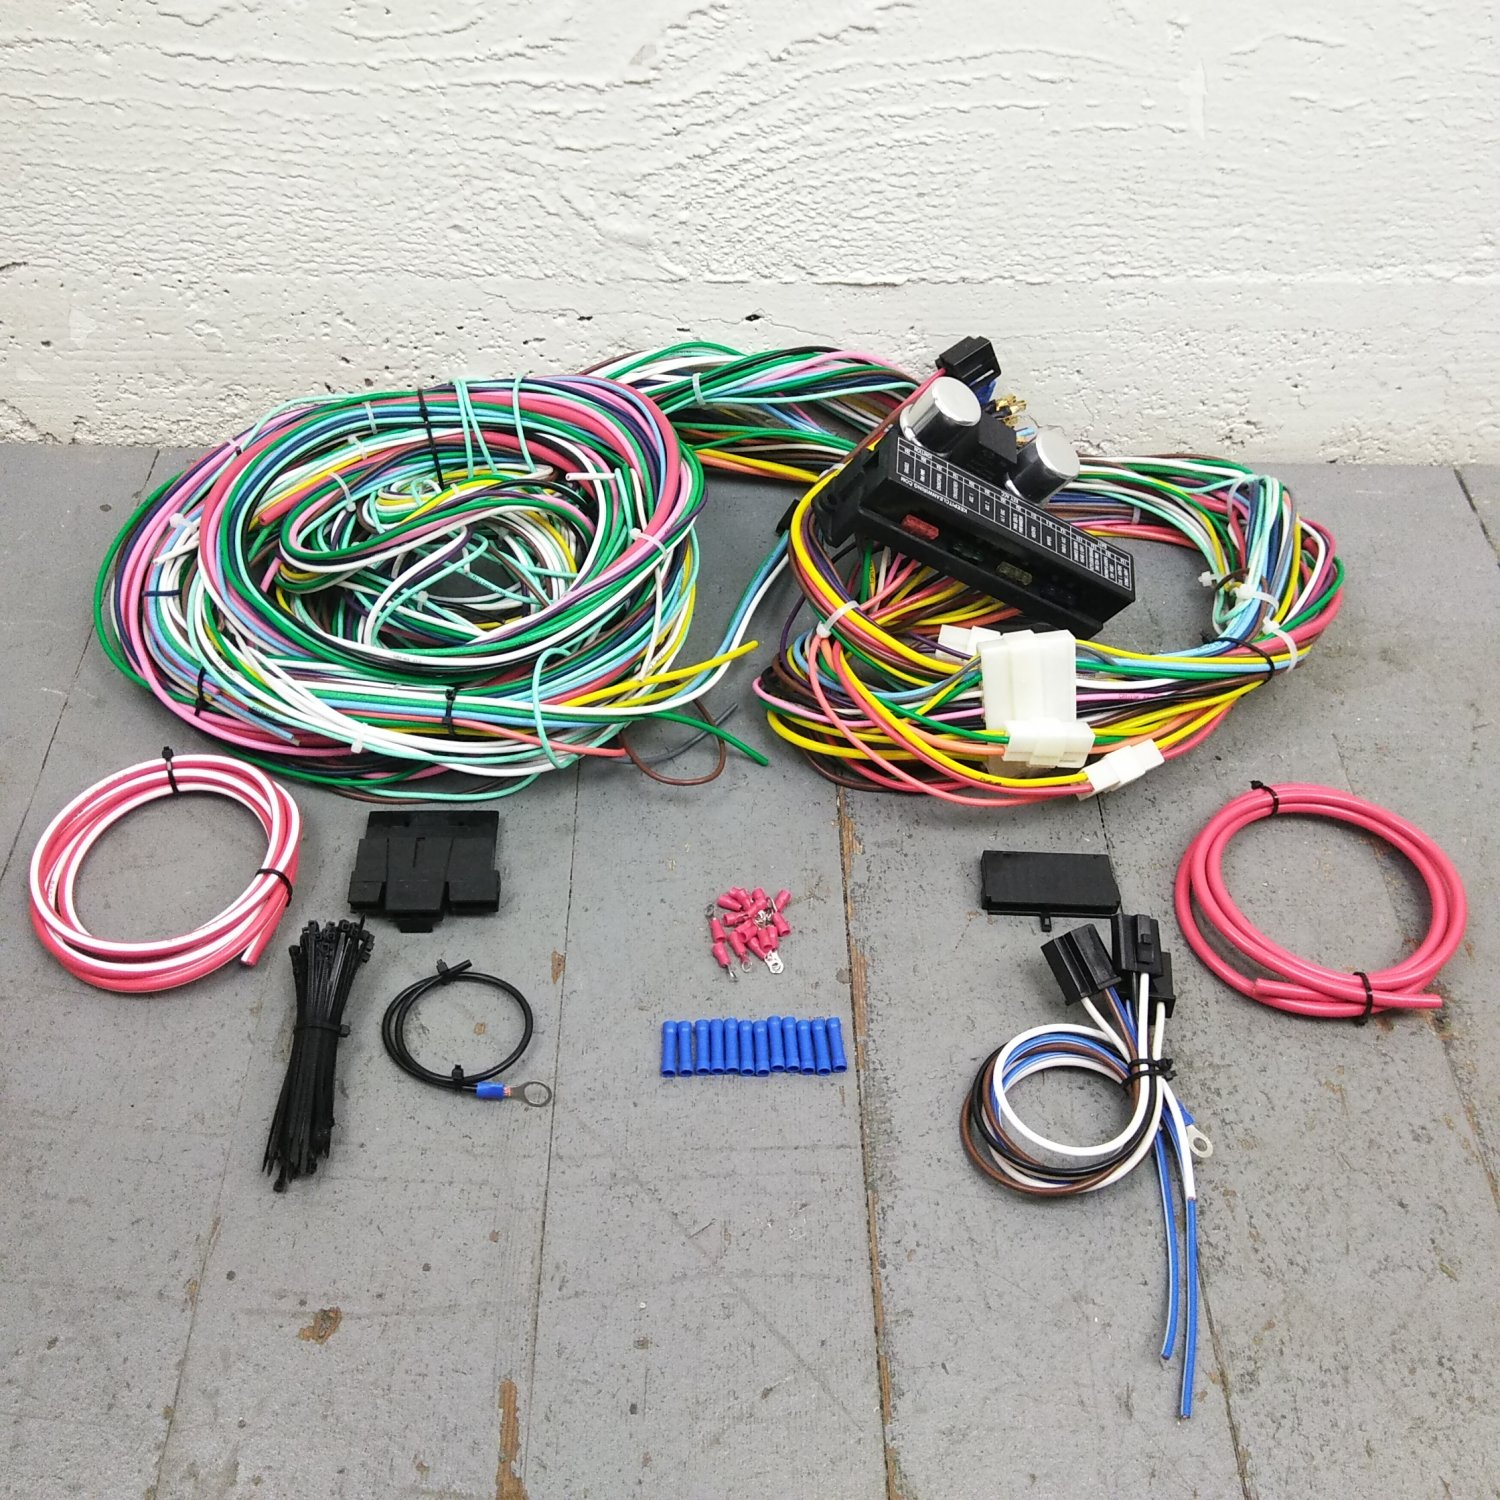 hight resolution of 1964 1970 ford mustang wire harness upgrade kit fits painless new terminal kic bar product description c